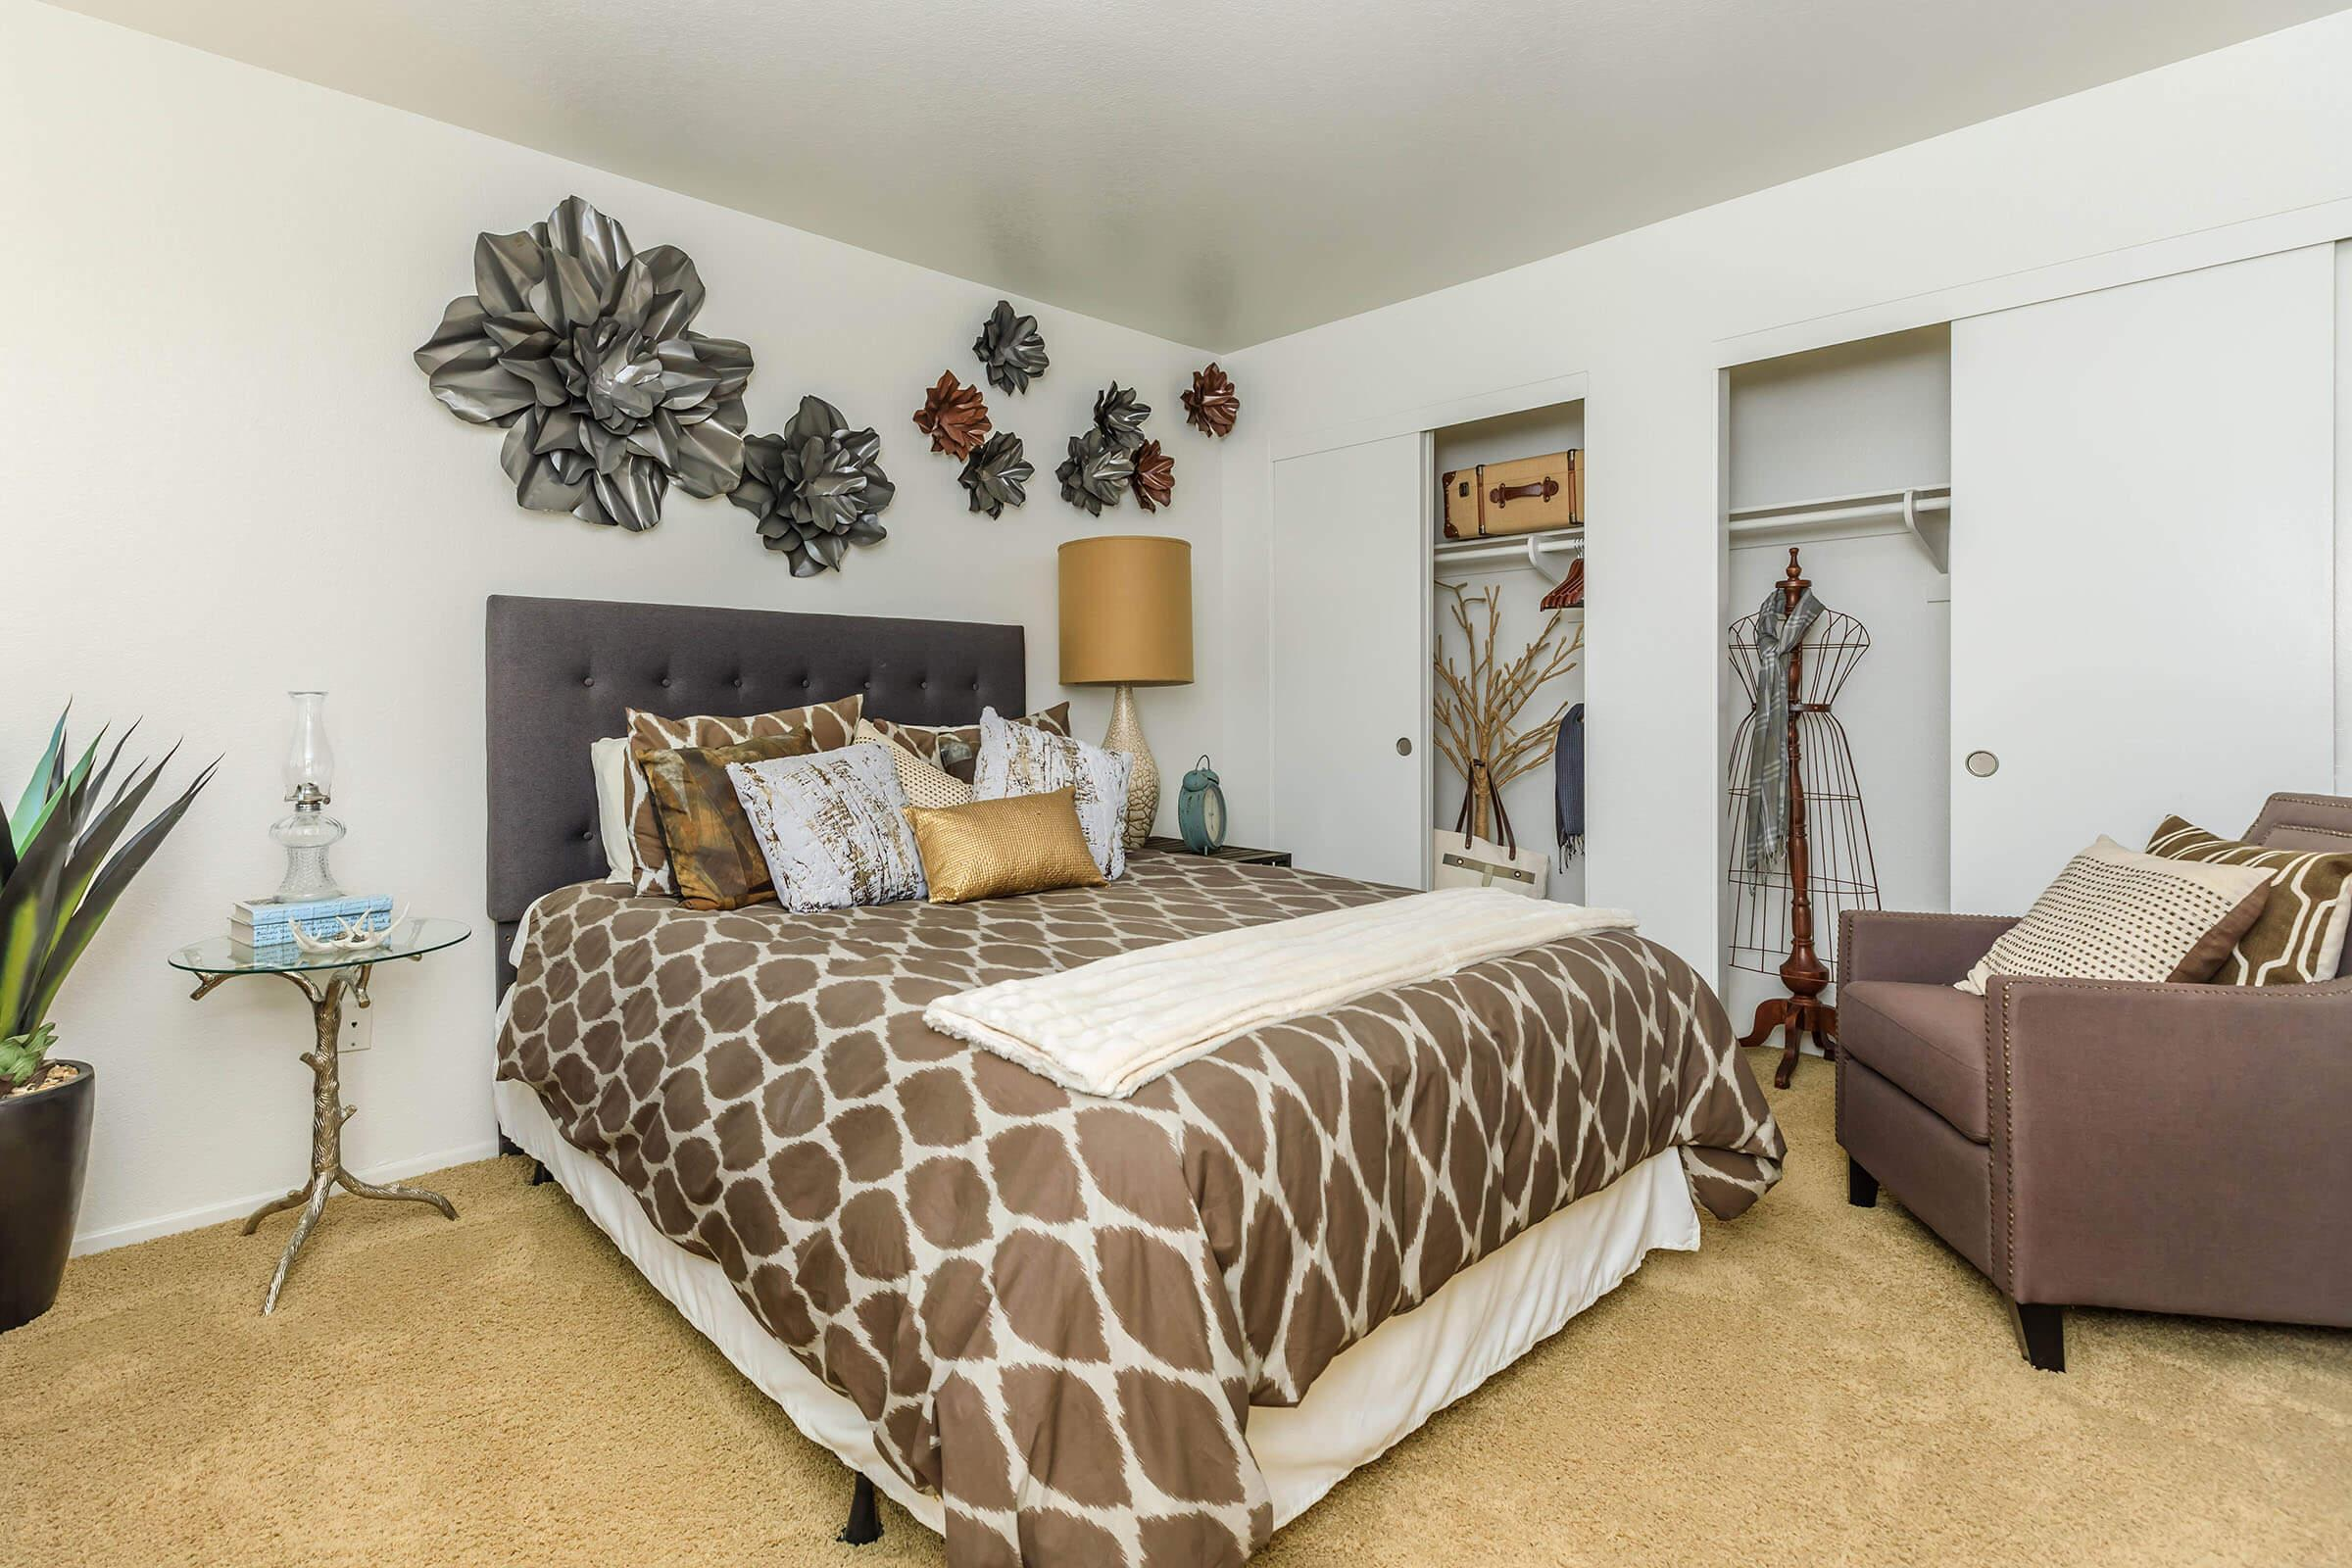 Bedroom with brown bedding